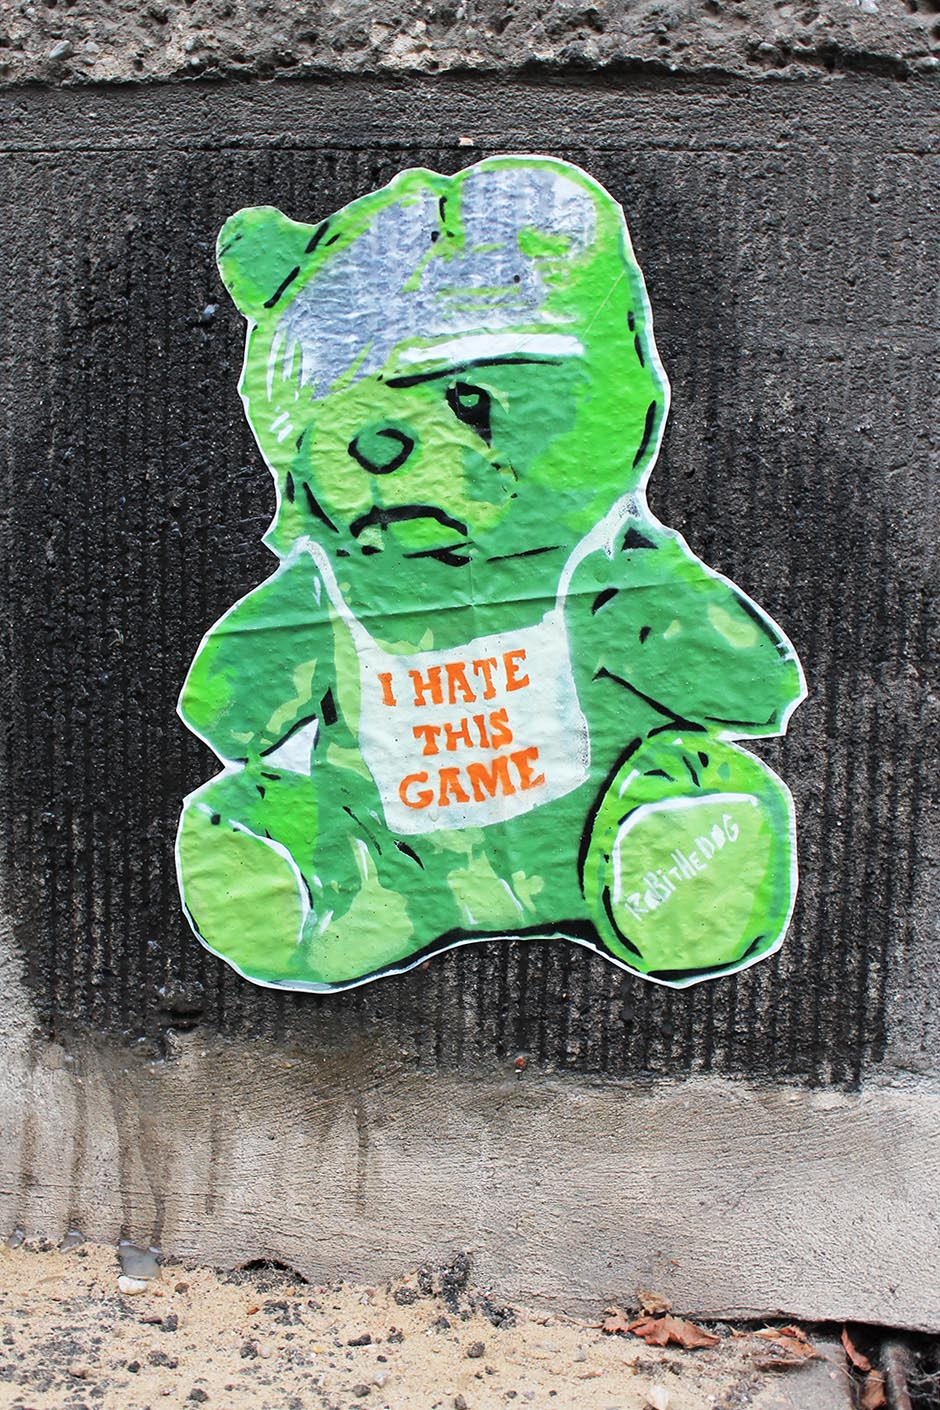 I hate this game by Street Artist Robi the Dog in Berlin